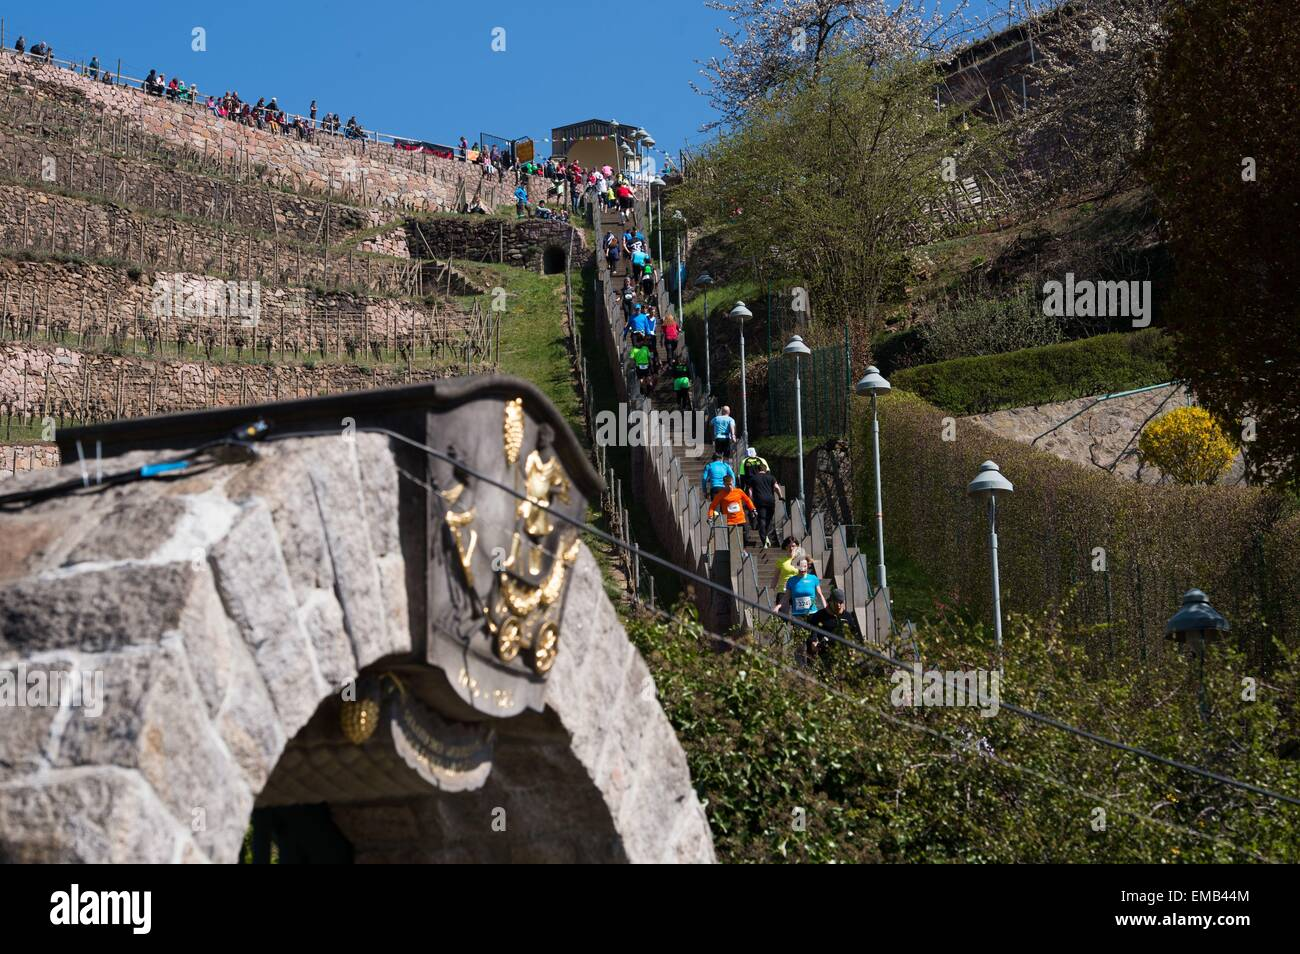 Radebeul, Germany. 19th Apr, 2015. Participants in the Mount Everest Stair Marathon run up and down a total of 397 - Stock Image